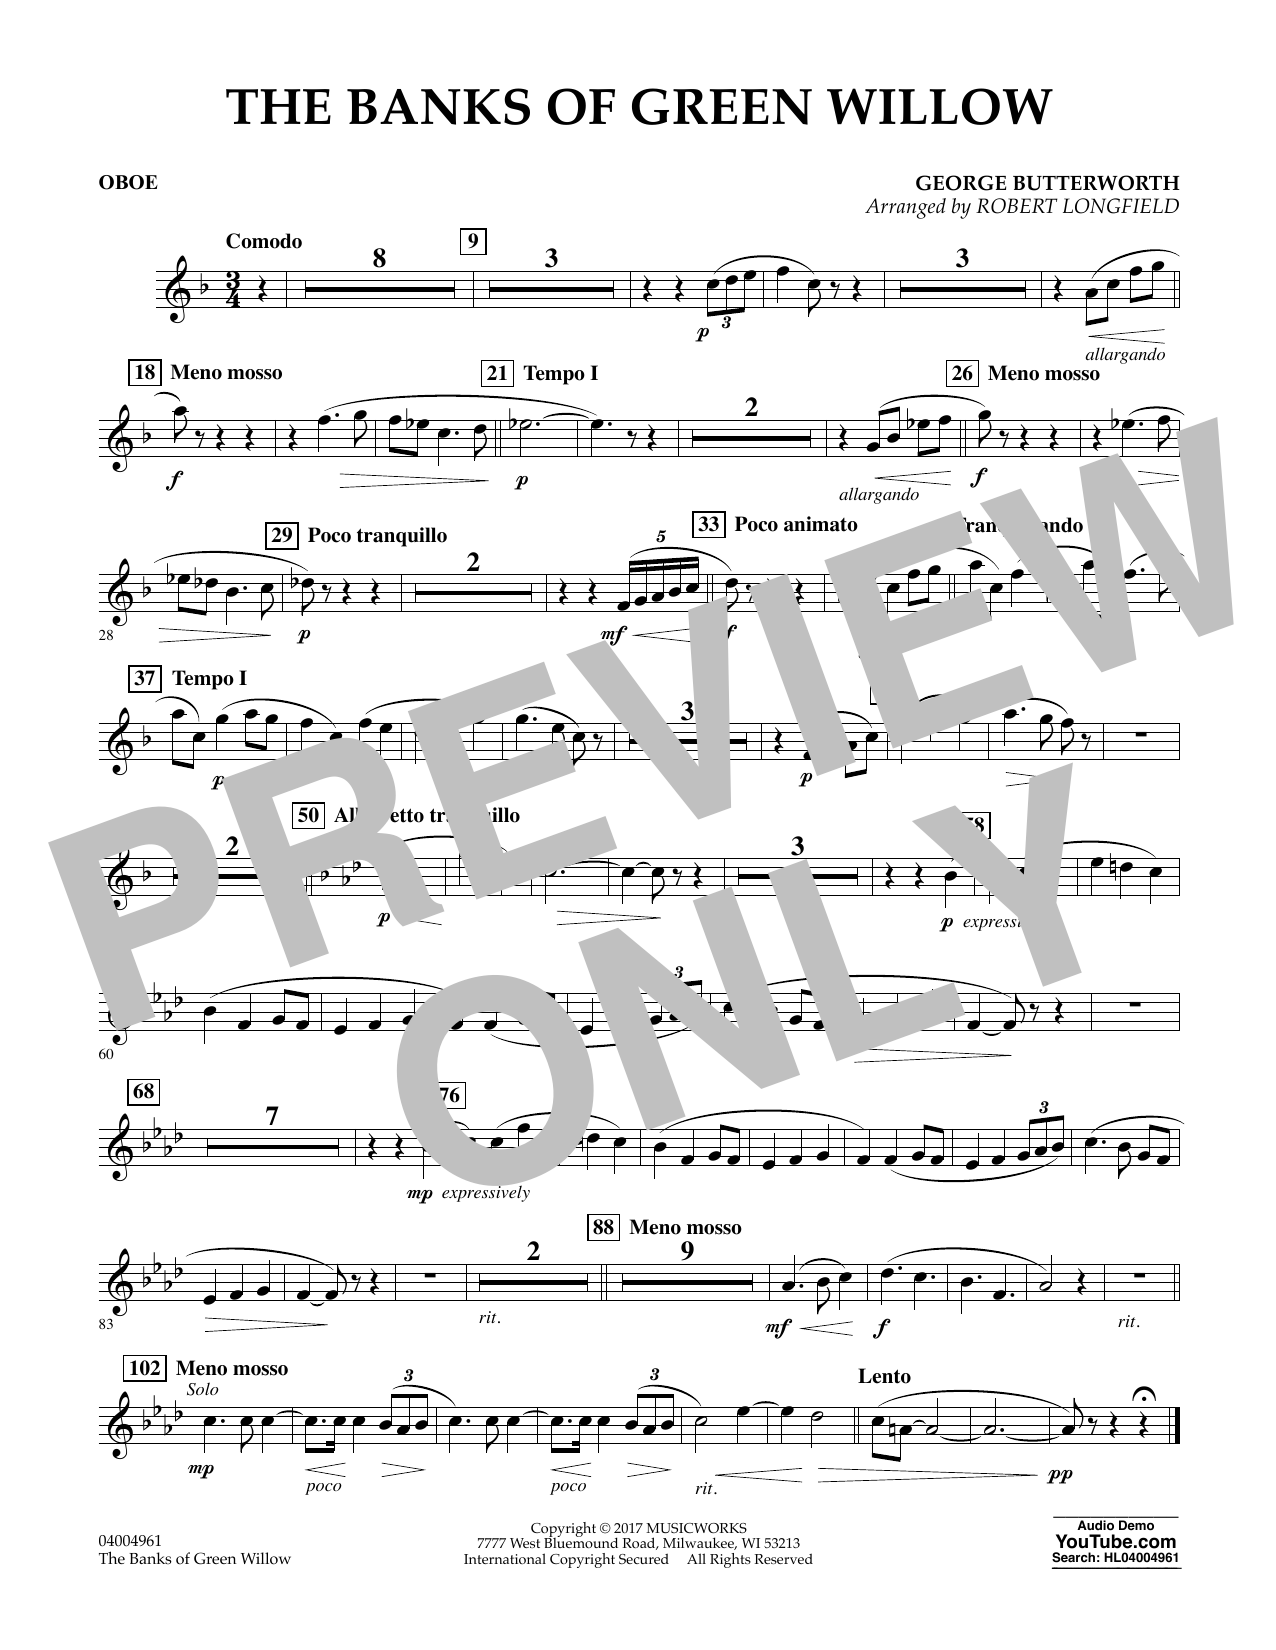 The Banks of Green Willow - Oboe Sheet Music